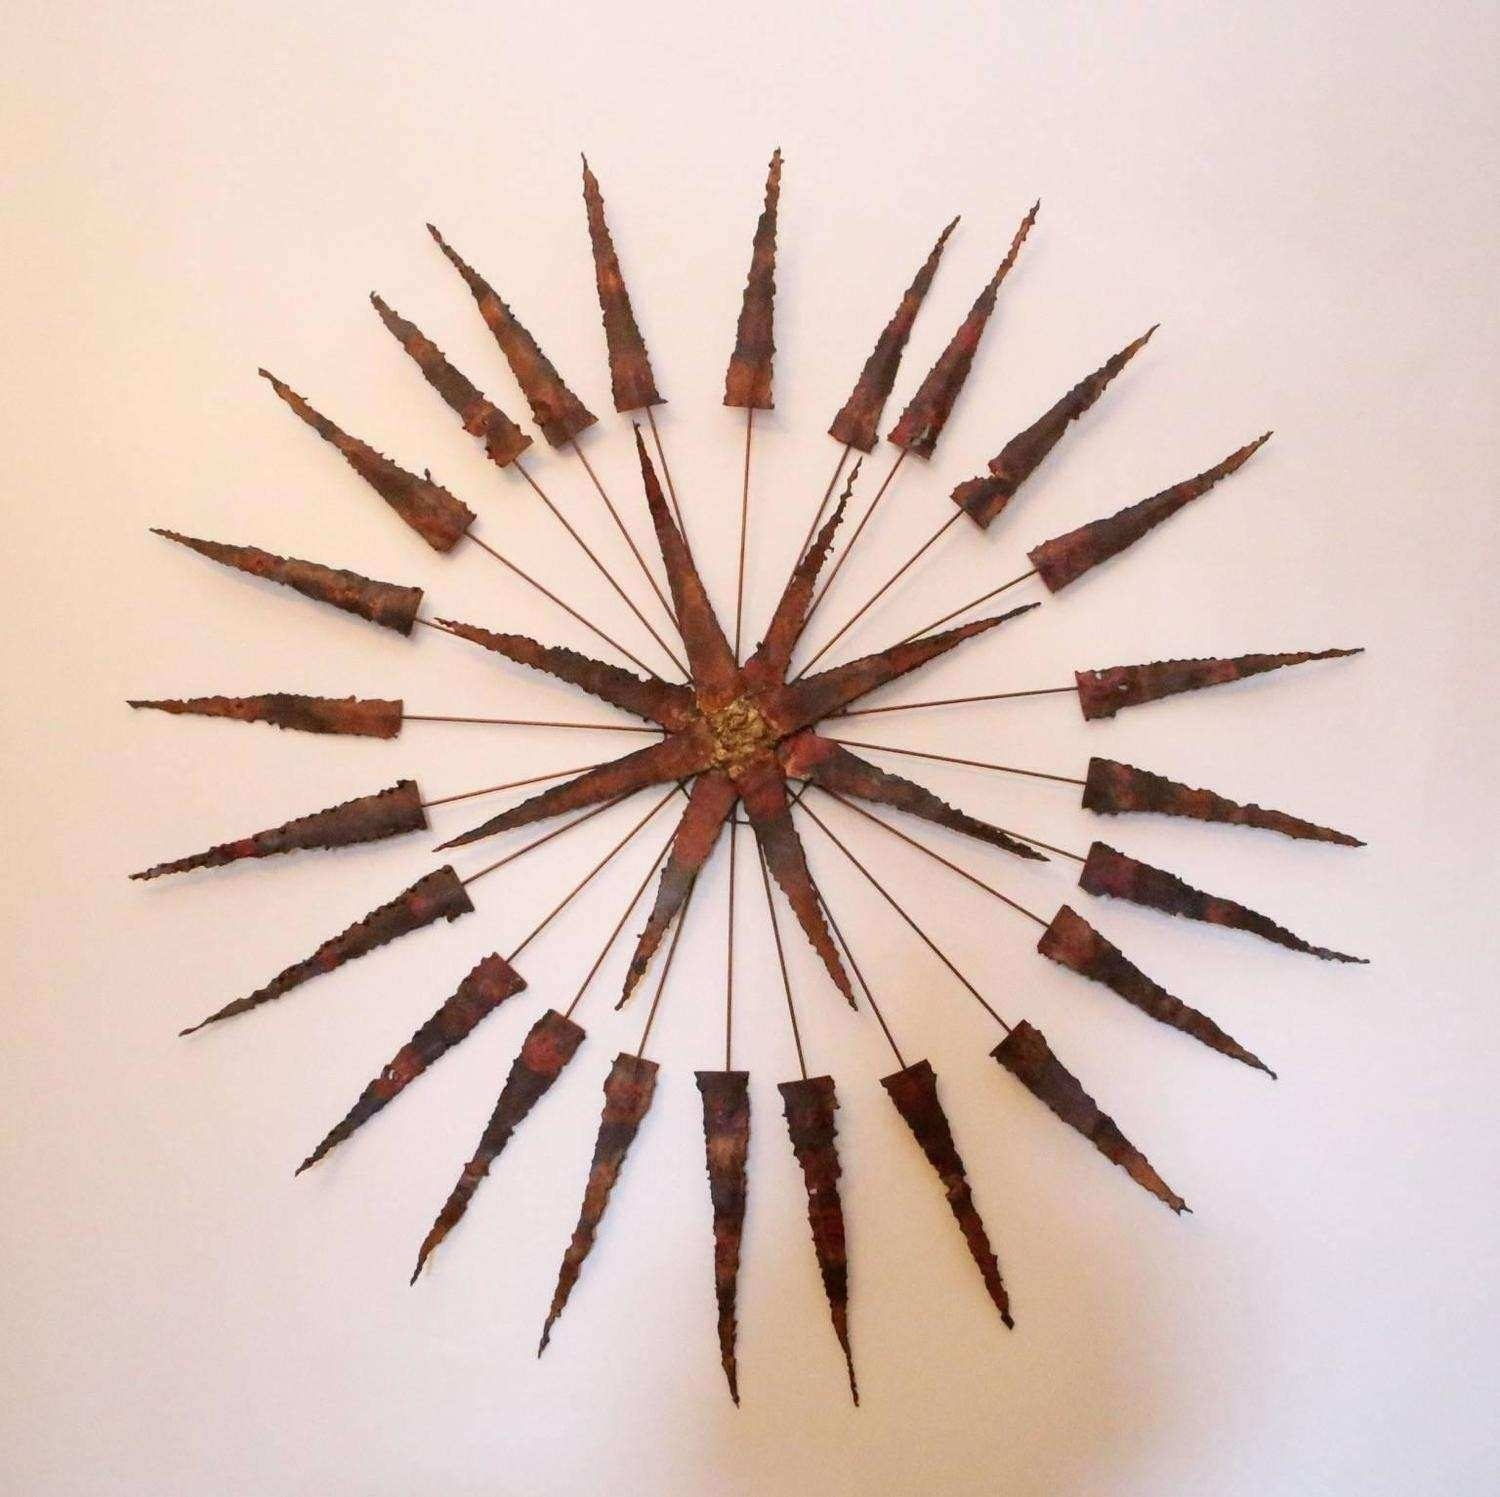 Starburst Wall Art Awesome Starburst Metal Wall Sculpture For Sale Intended For Most Recently Released Starburst Wall Art (View 16 of 20)